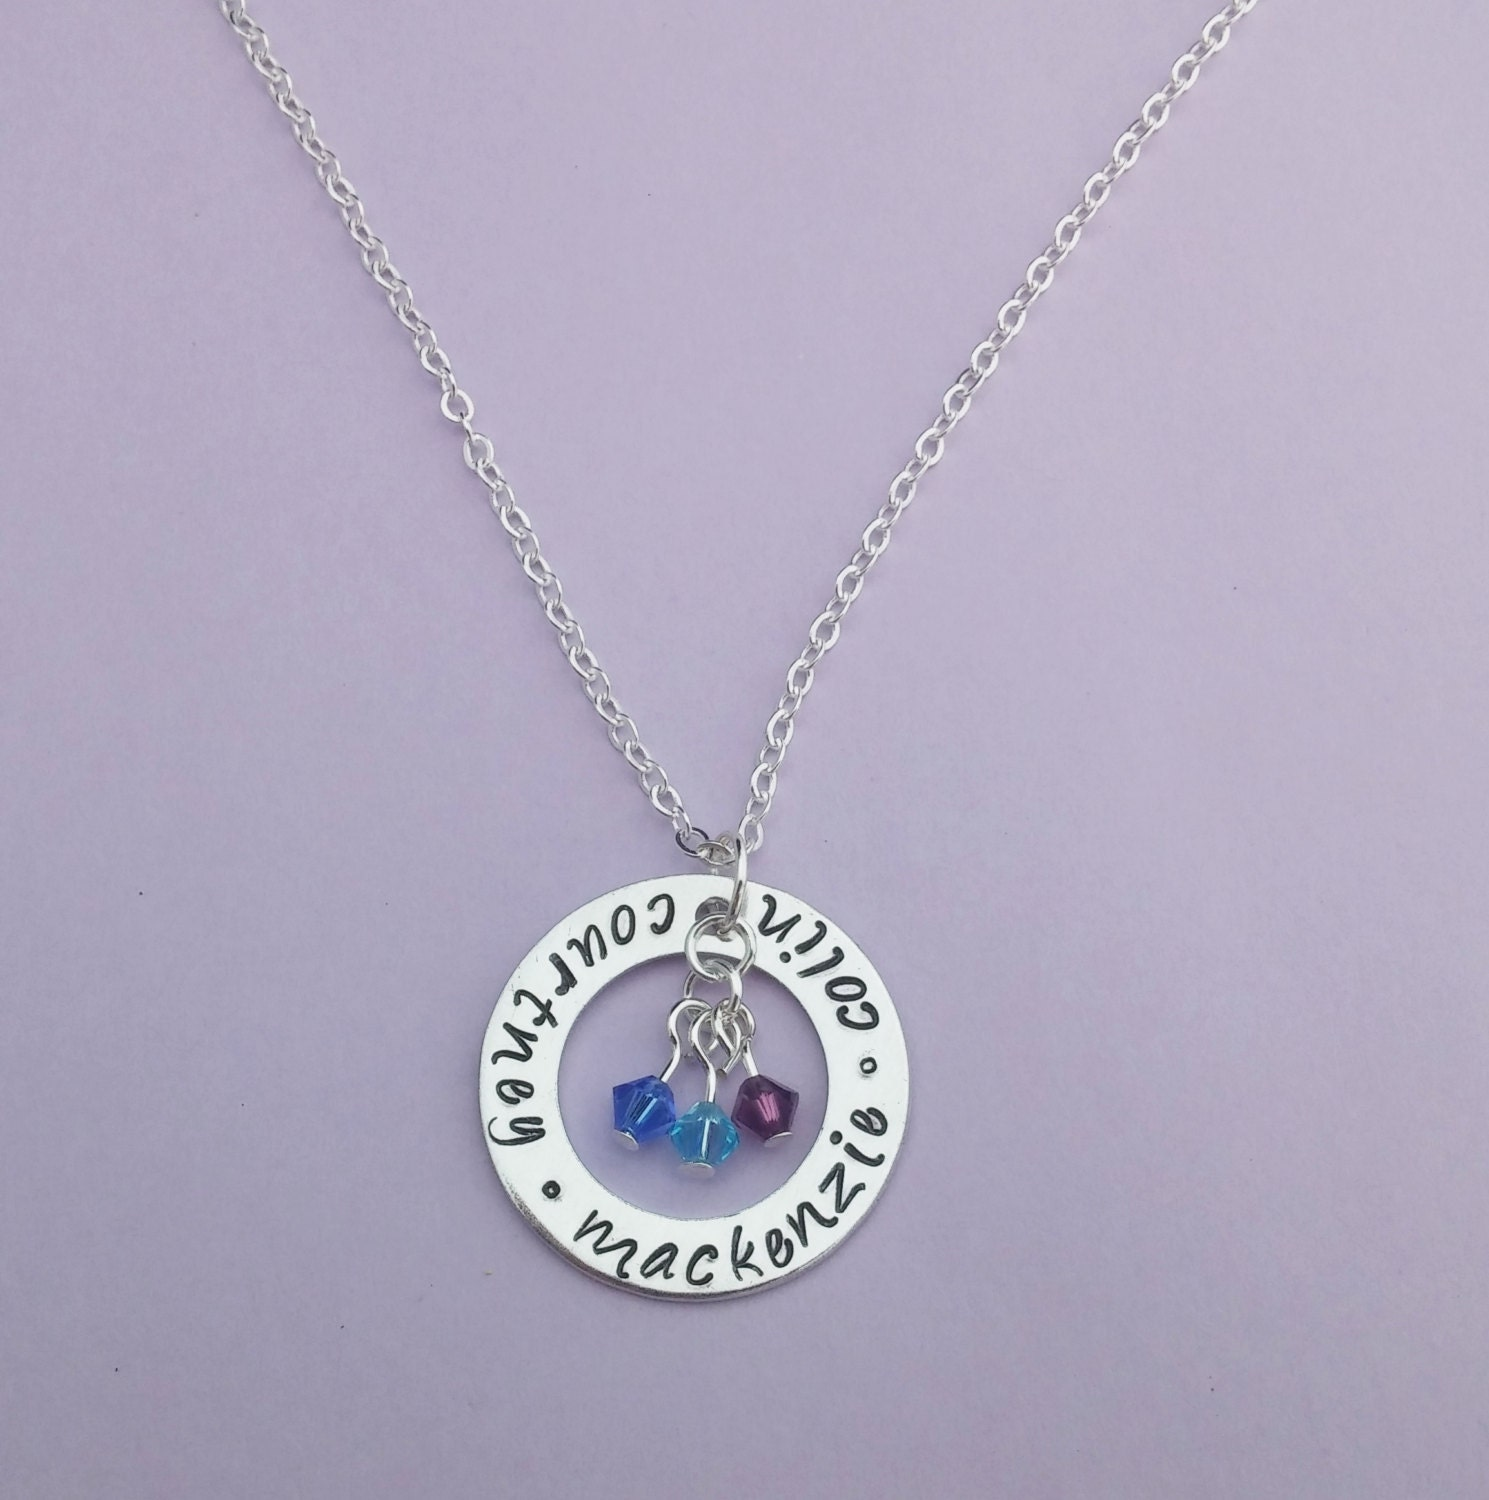 personalized family necklace necklace with kids names and